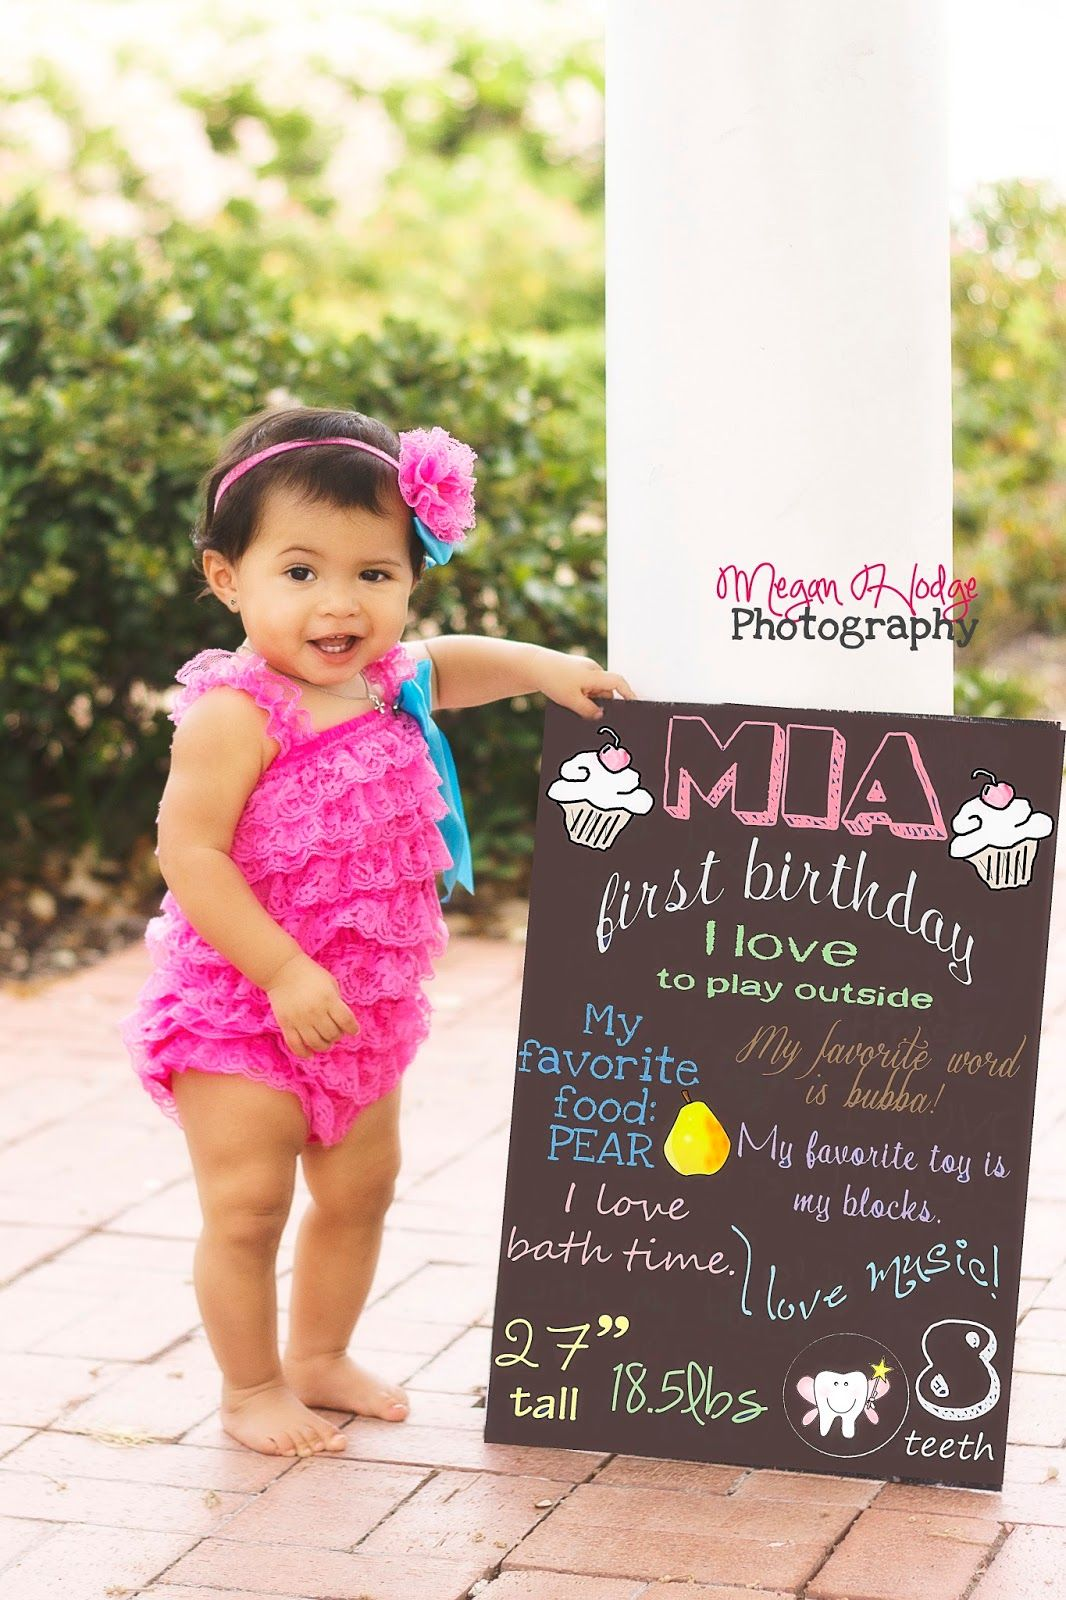 Sweet one year old birthday pictures. perfectsign